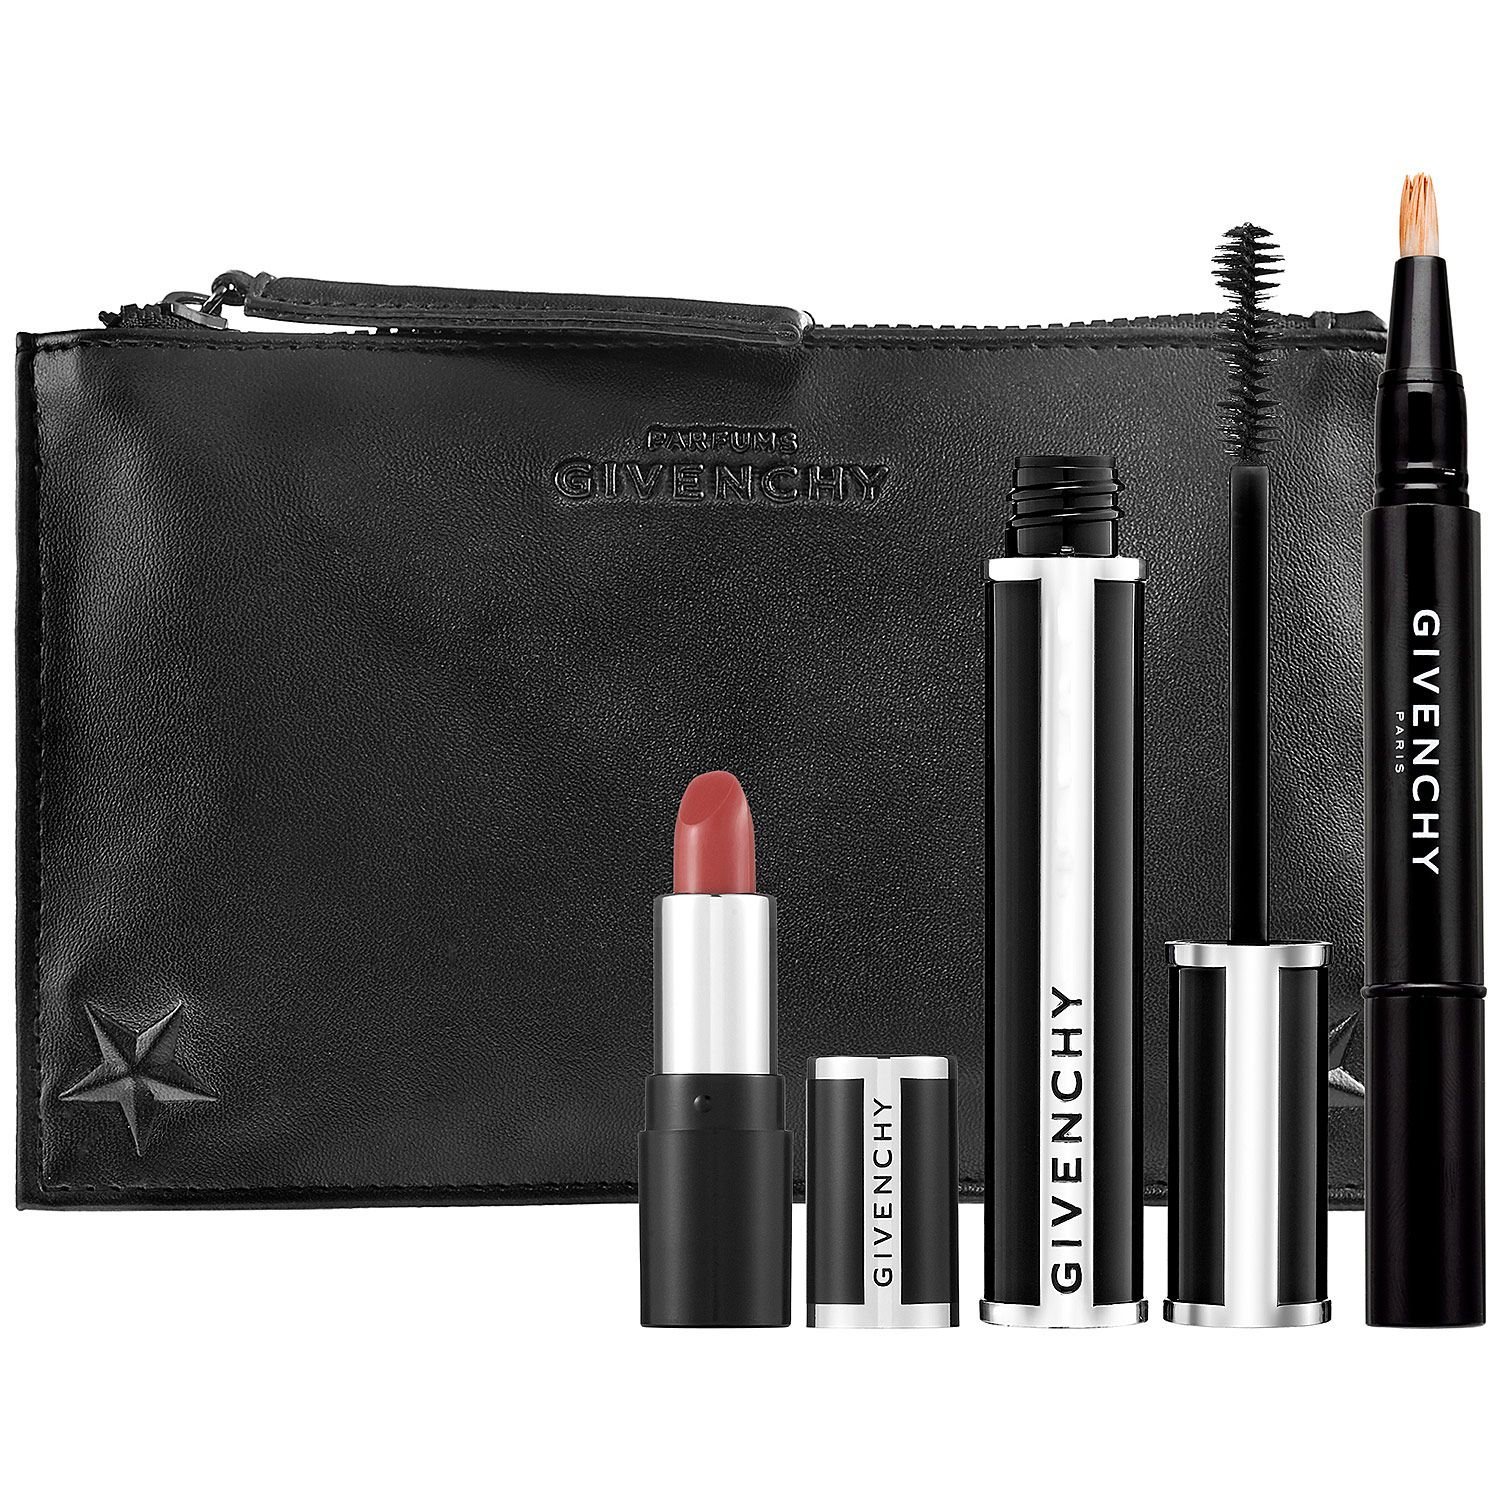 Givenchy Red Carpet Look Set Sephora Giftopia gifts